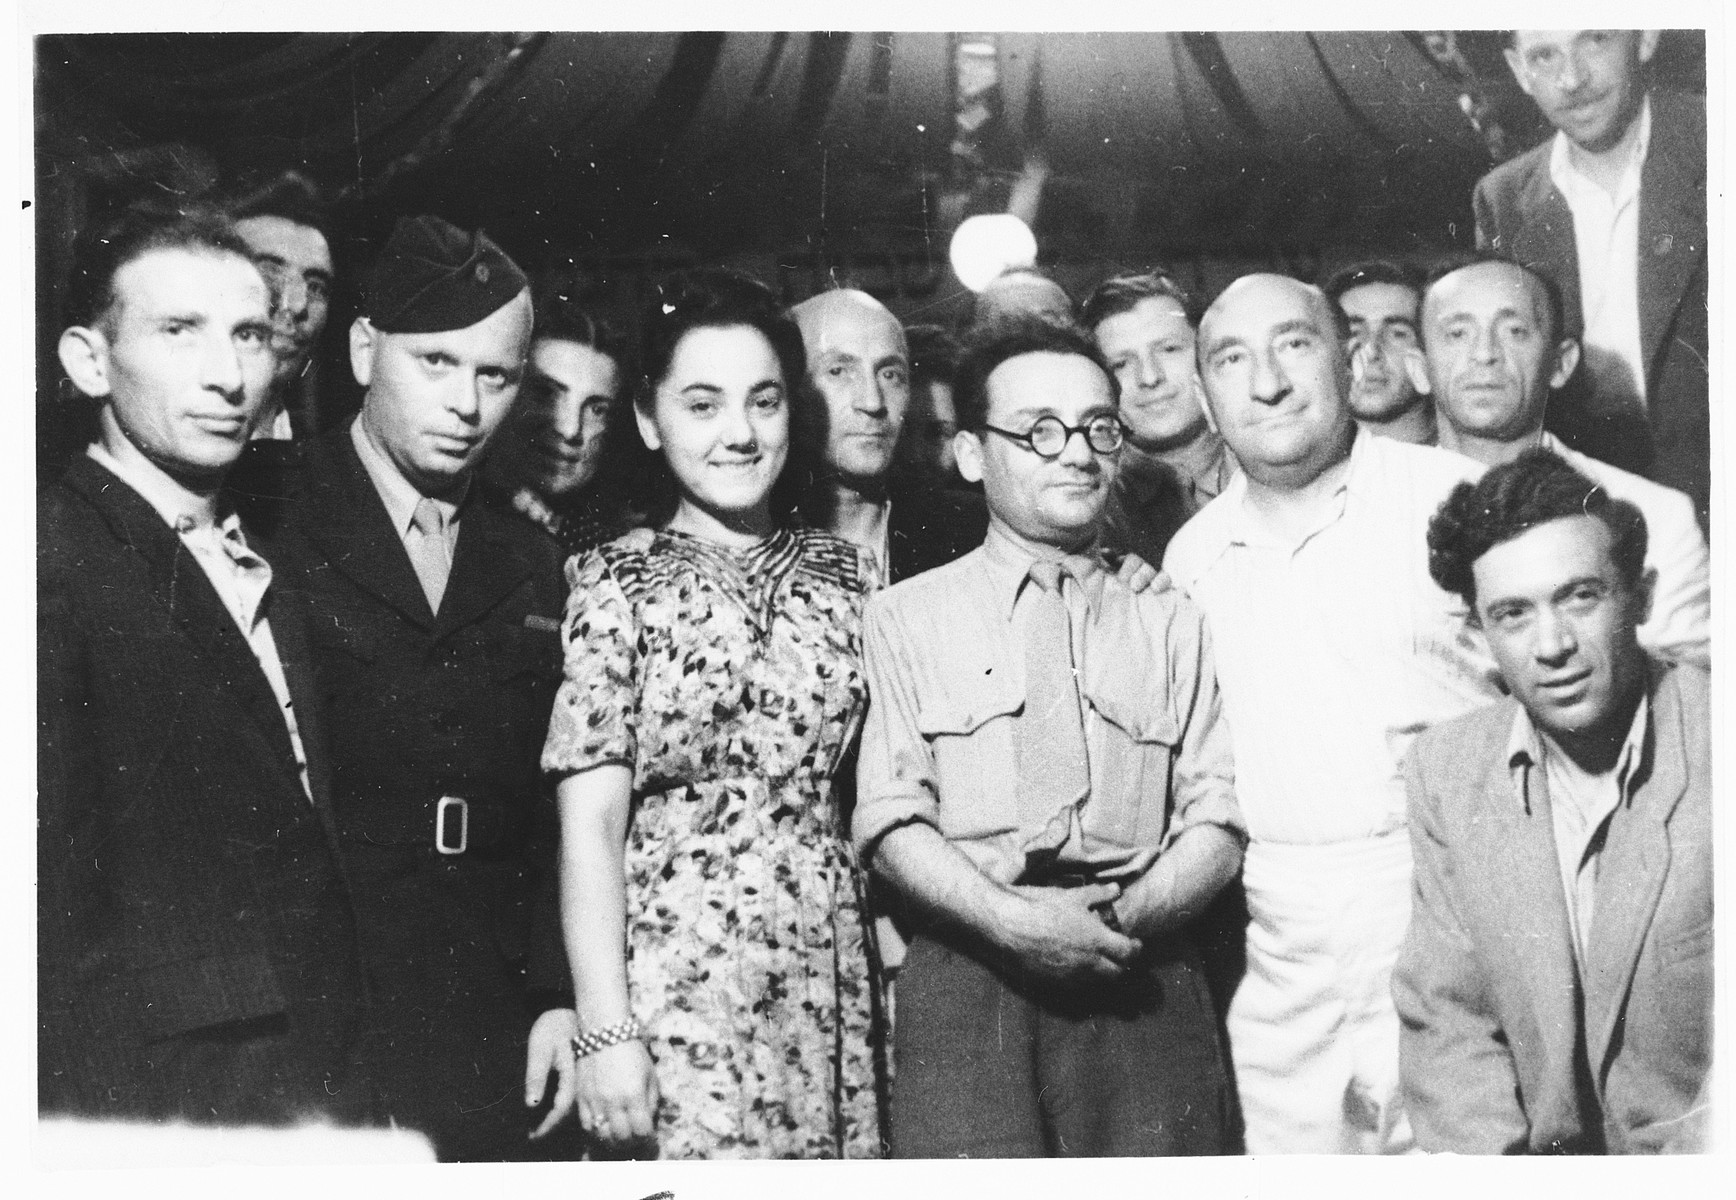 Group portrait of Jewish displaced persons in the Pocking camp.  Samuel Tick (the leader of Farband) is on the far left.  His wife Faiga Milchberg Tick is in the center.